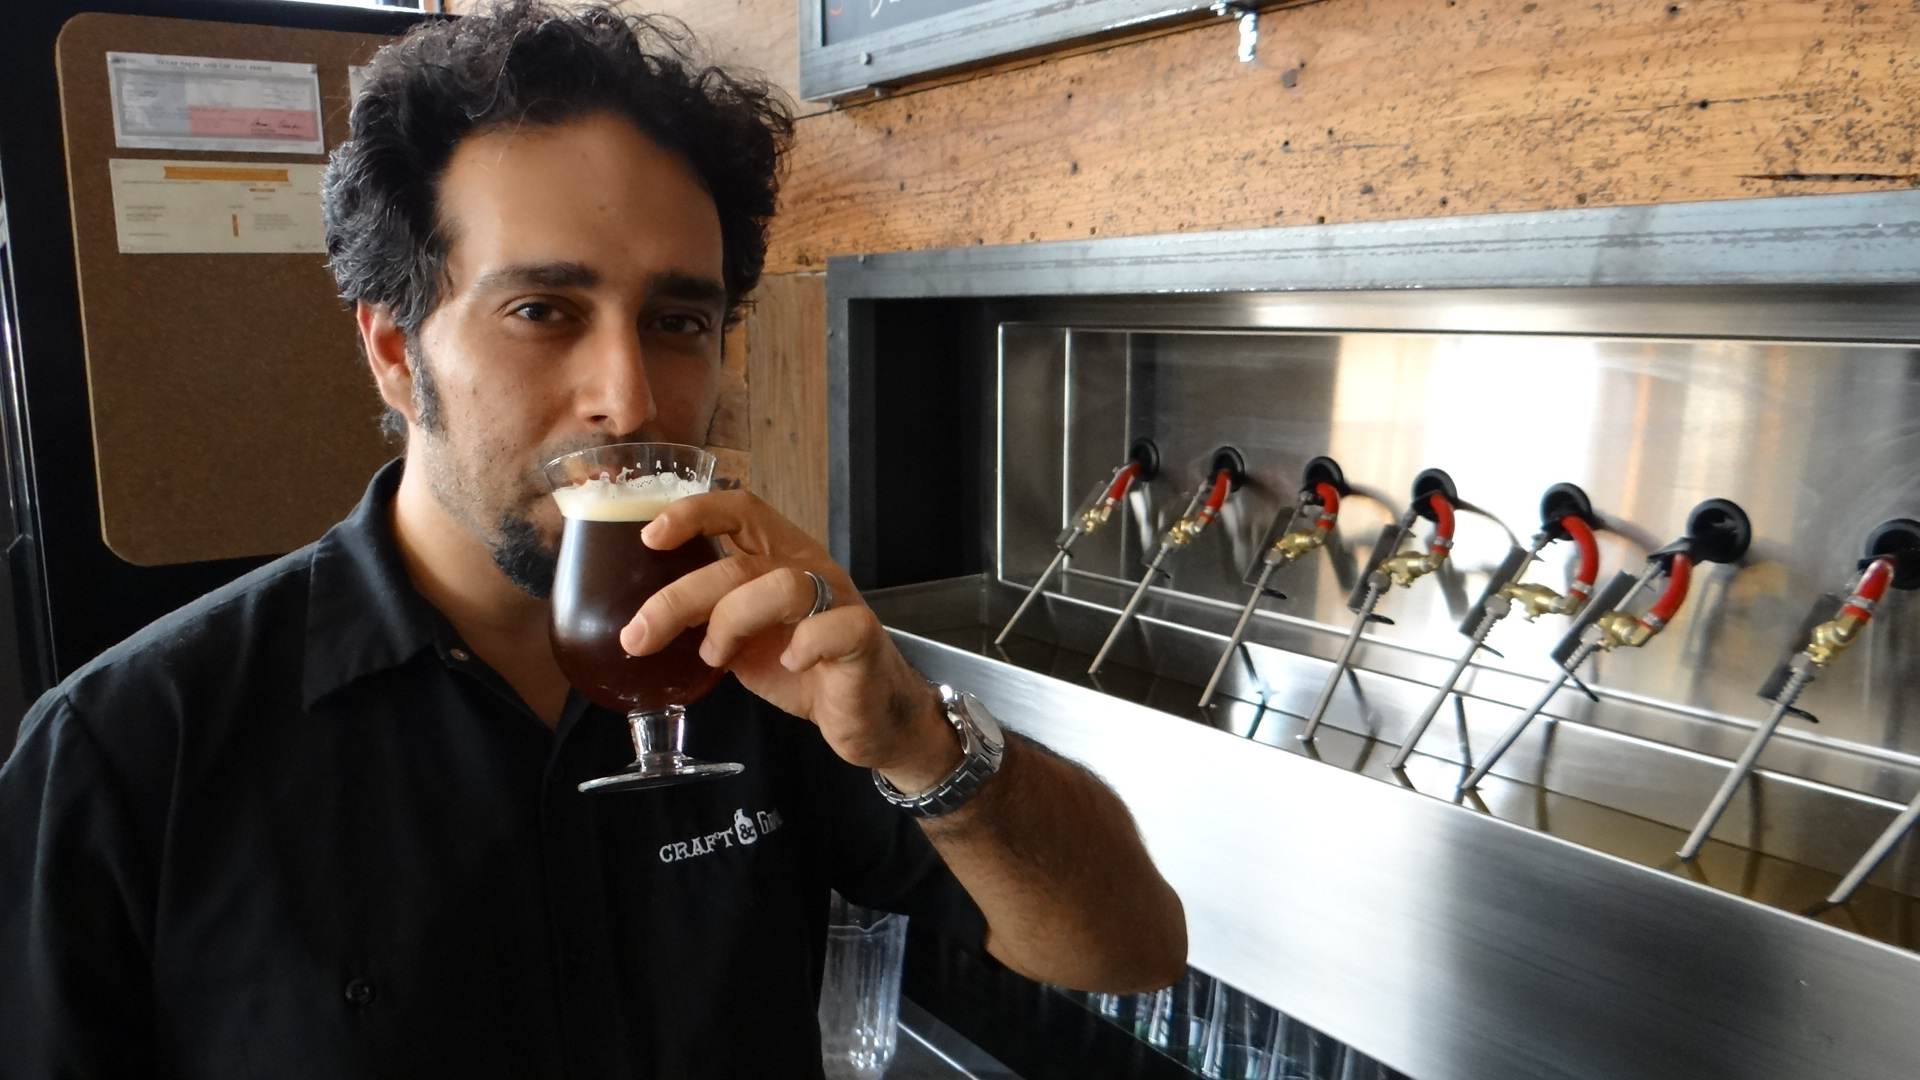 The Craft and Growler Bicycle Brewery Tour October 5th